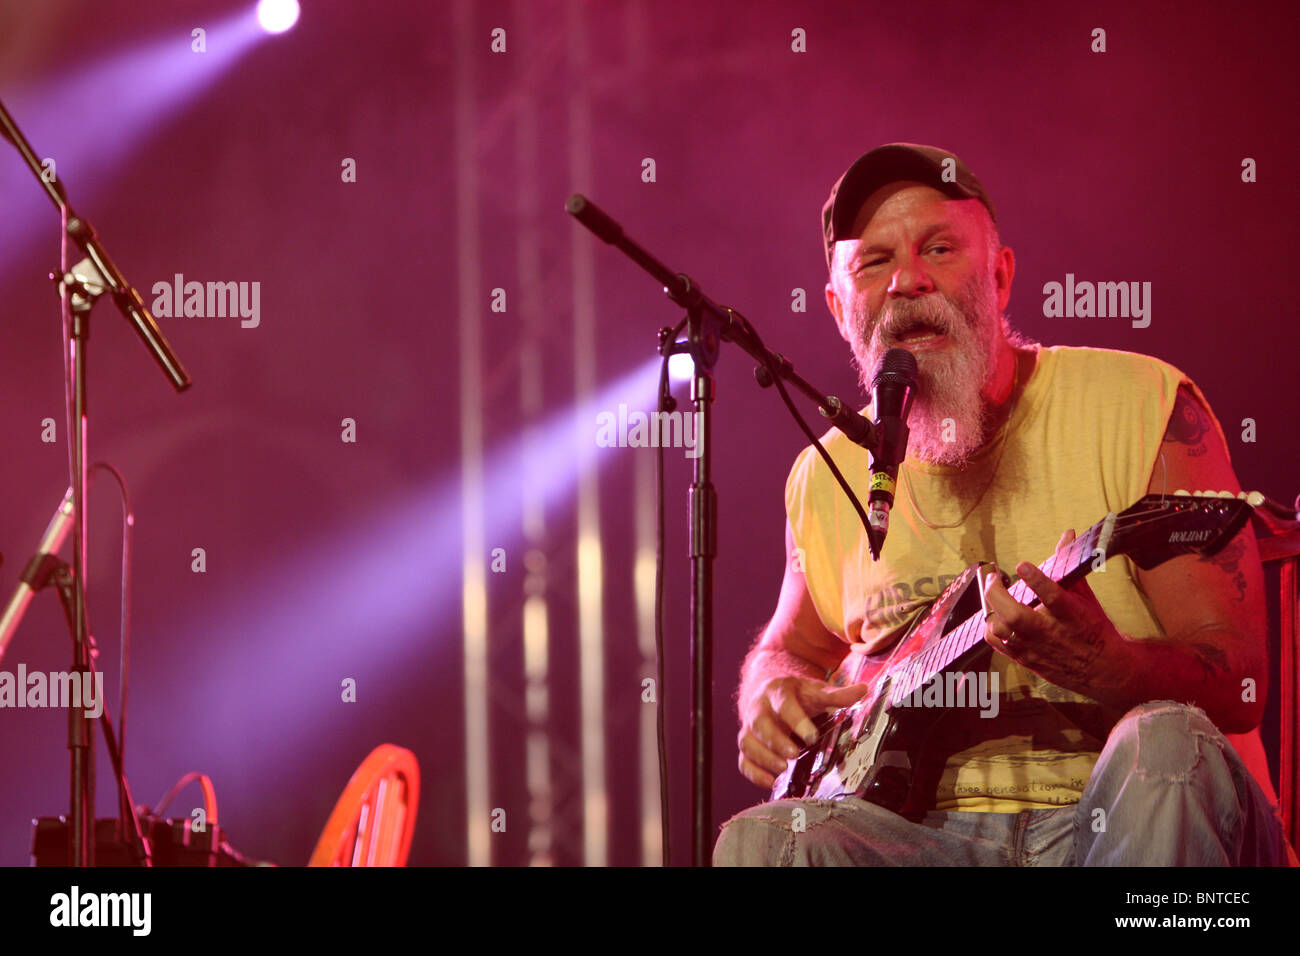 The Cambridge Folk Festival at Cherry Hinton Hall, Cambridge,August 1st 2010.Picture shows Seasick Steve  performing. - Stock Image